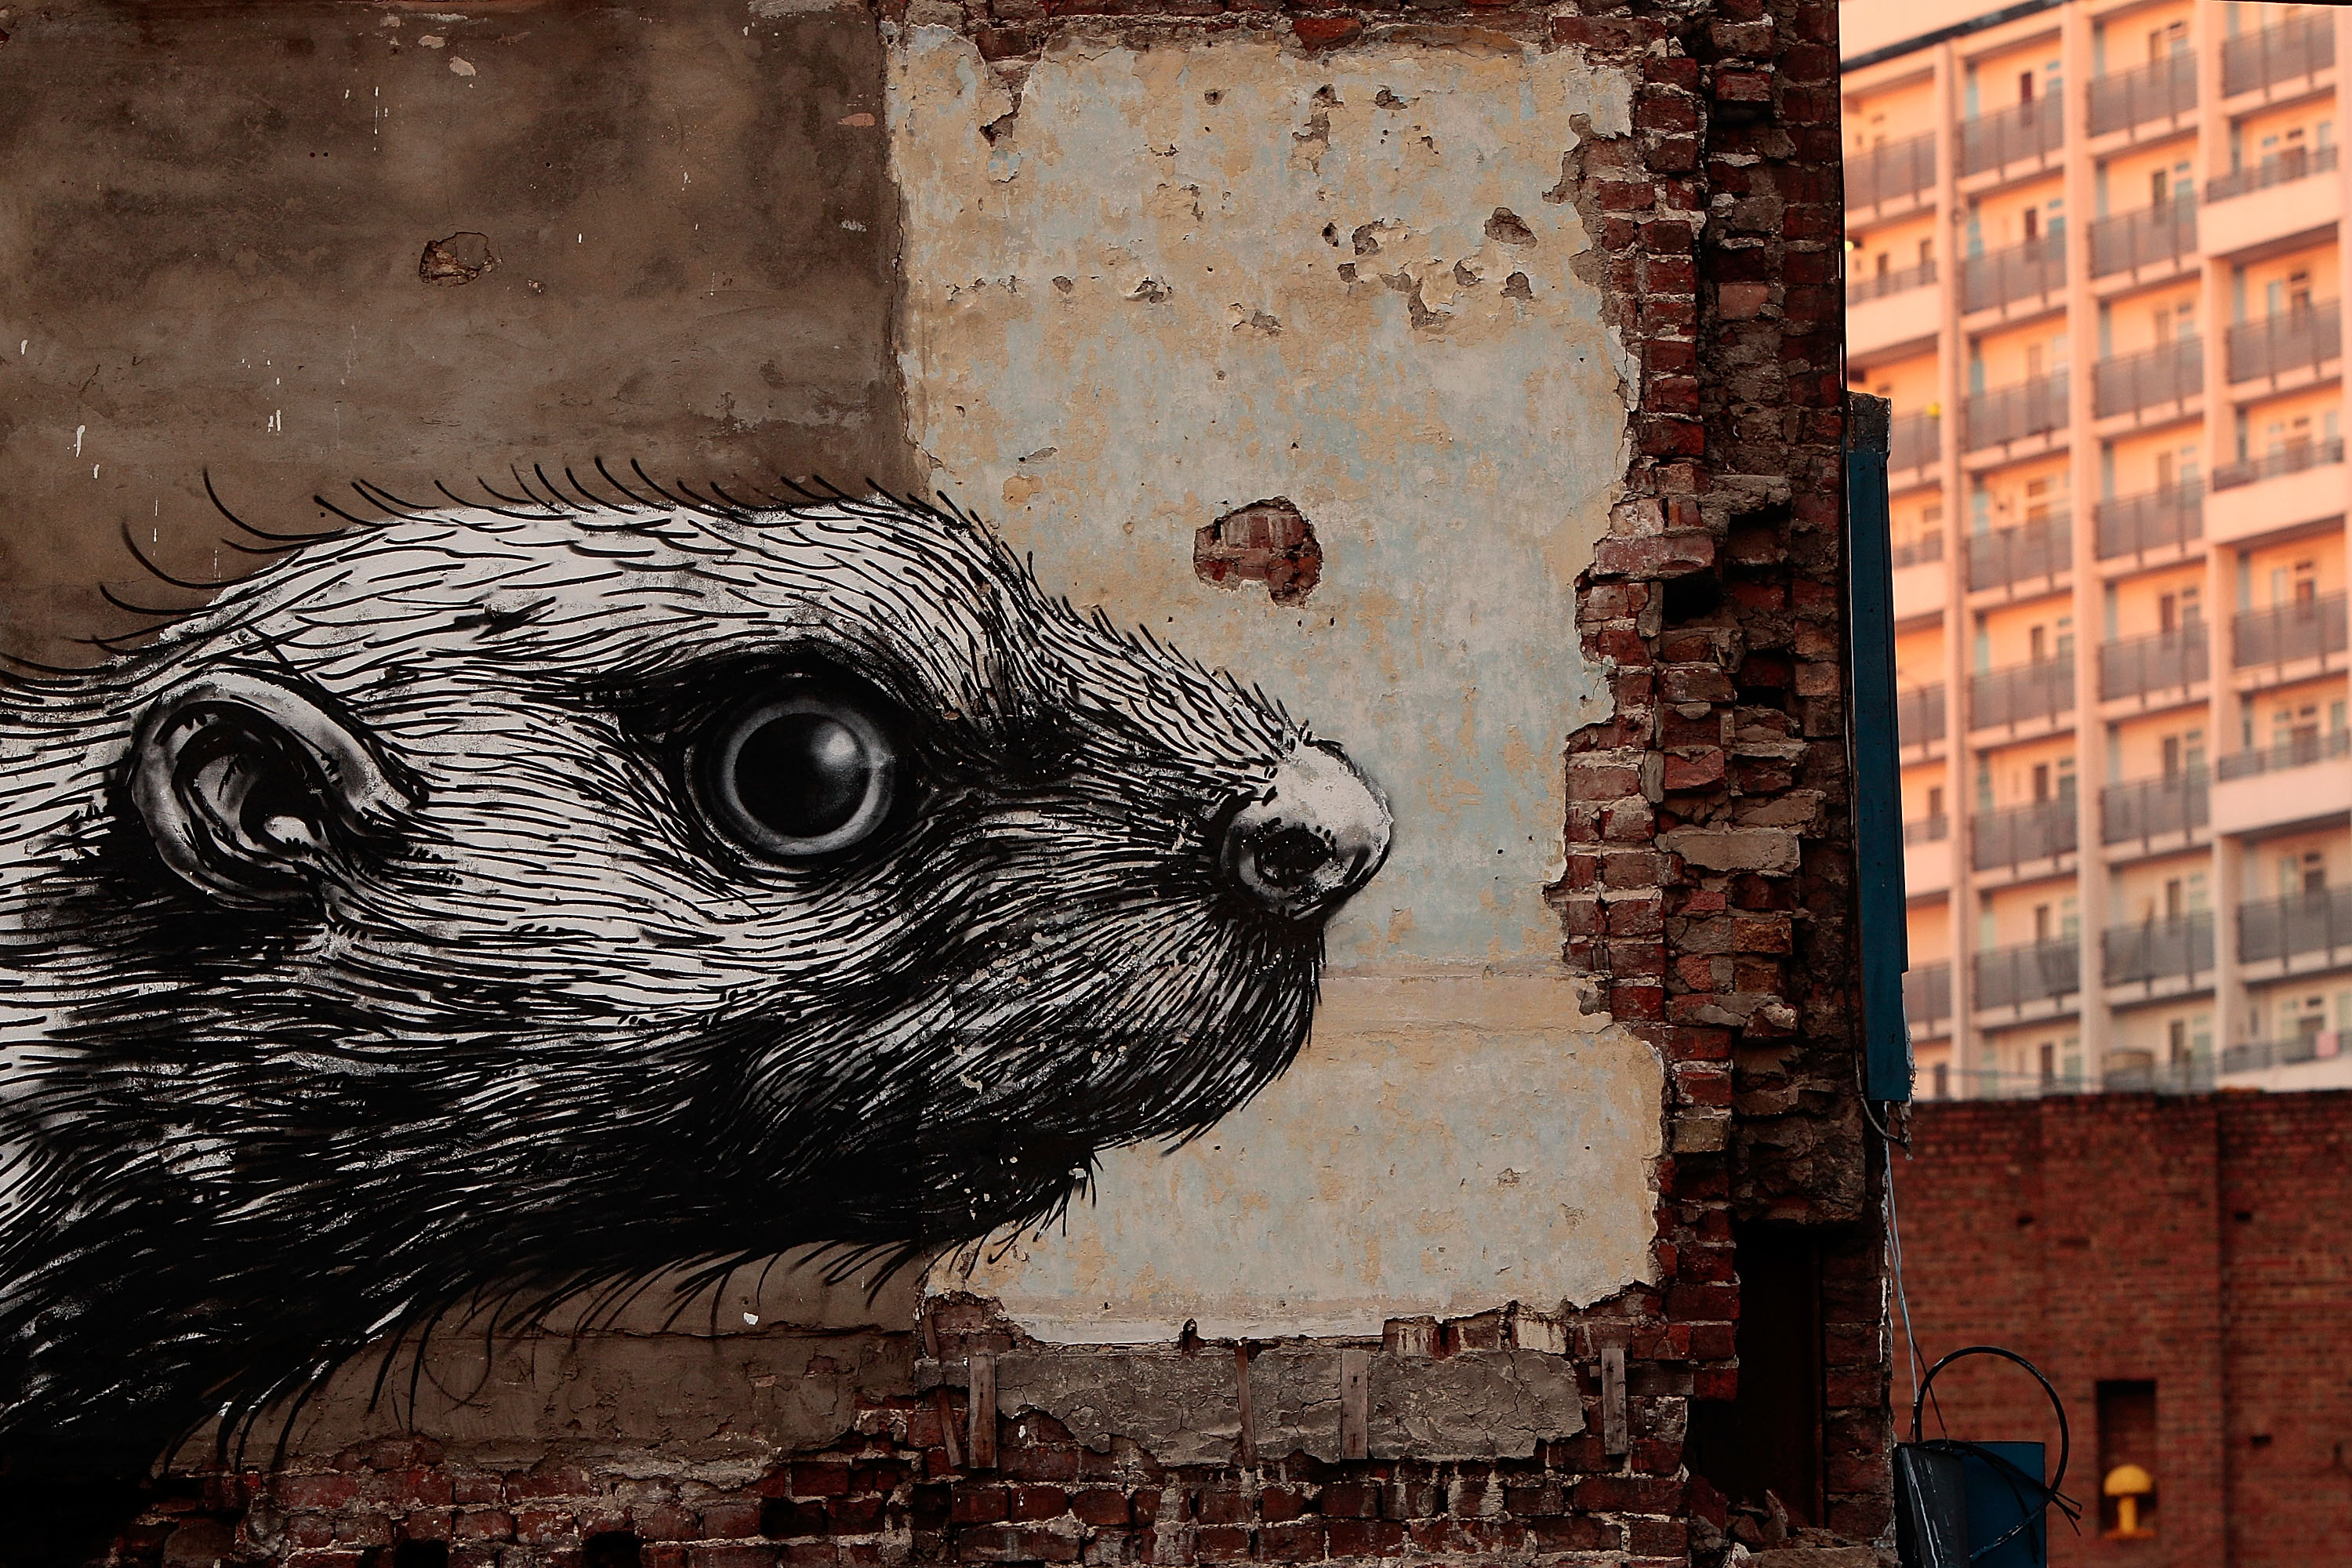 A piece of Roa's rodent series in the East End of London, Nov. 15, 2011.